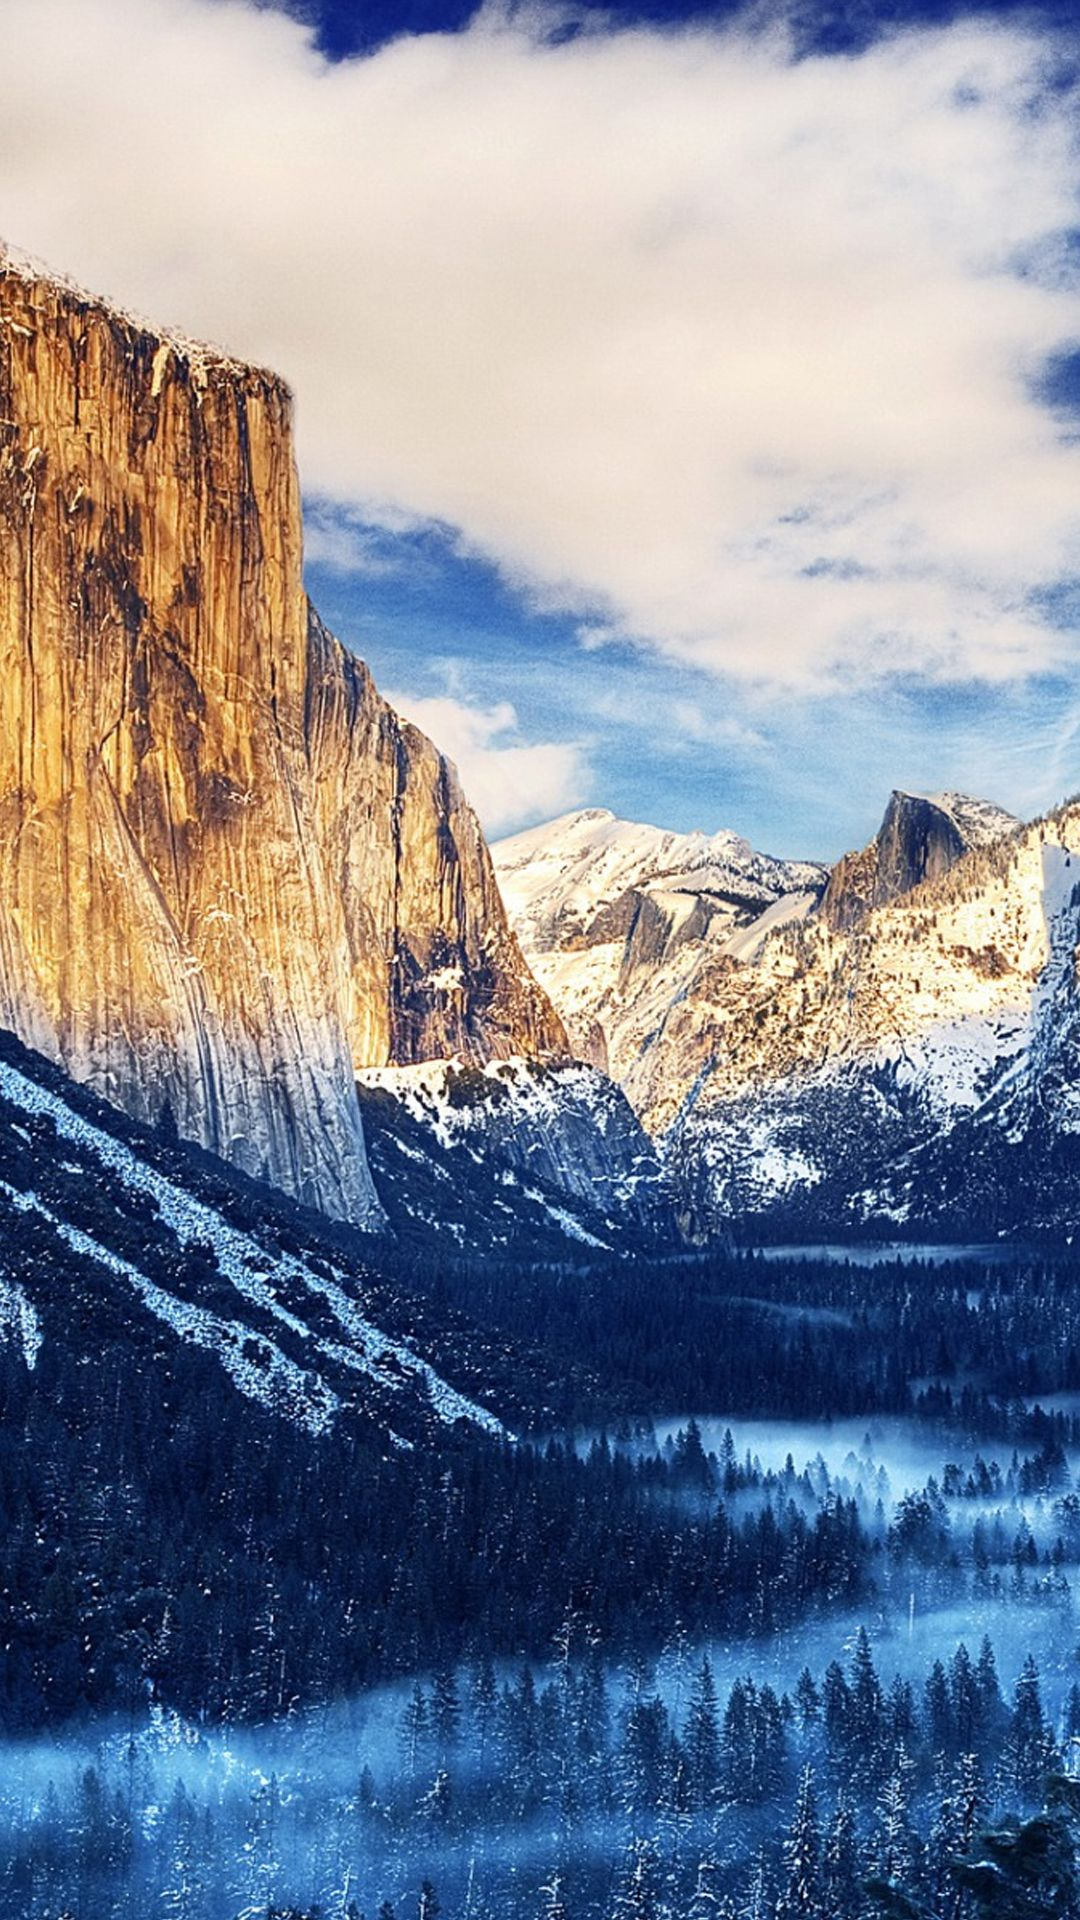 Yosemite National Park Winter Landscape Iphone 6 Plus Hd Wallpaper Iphone Wallpaper Winter Landscape Wallpaper Iphone Wallpaper Landscape